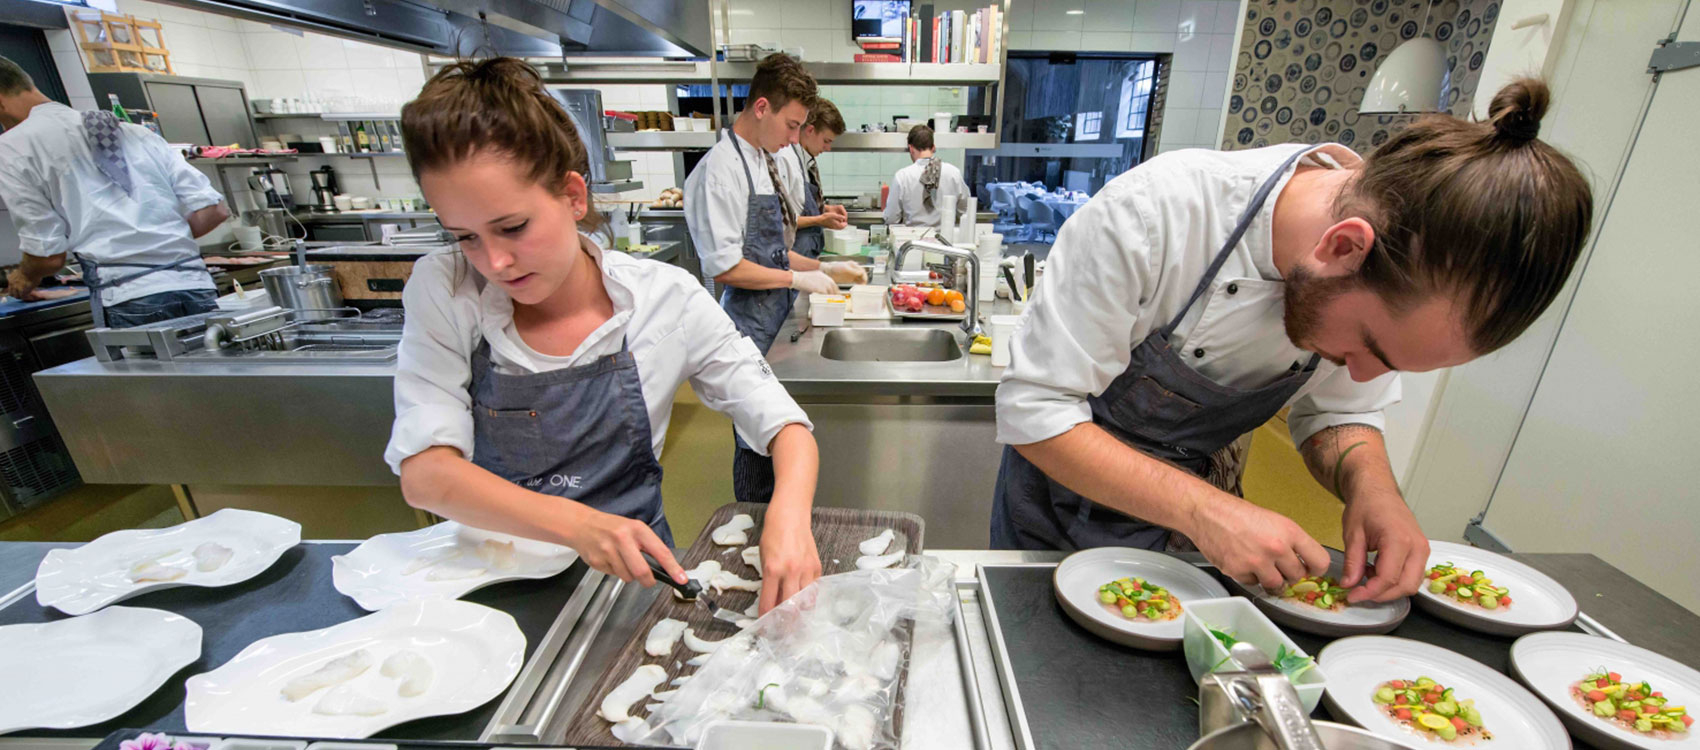 Chef_for_a_day_RestaurantONE_Roermond